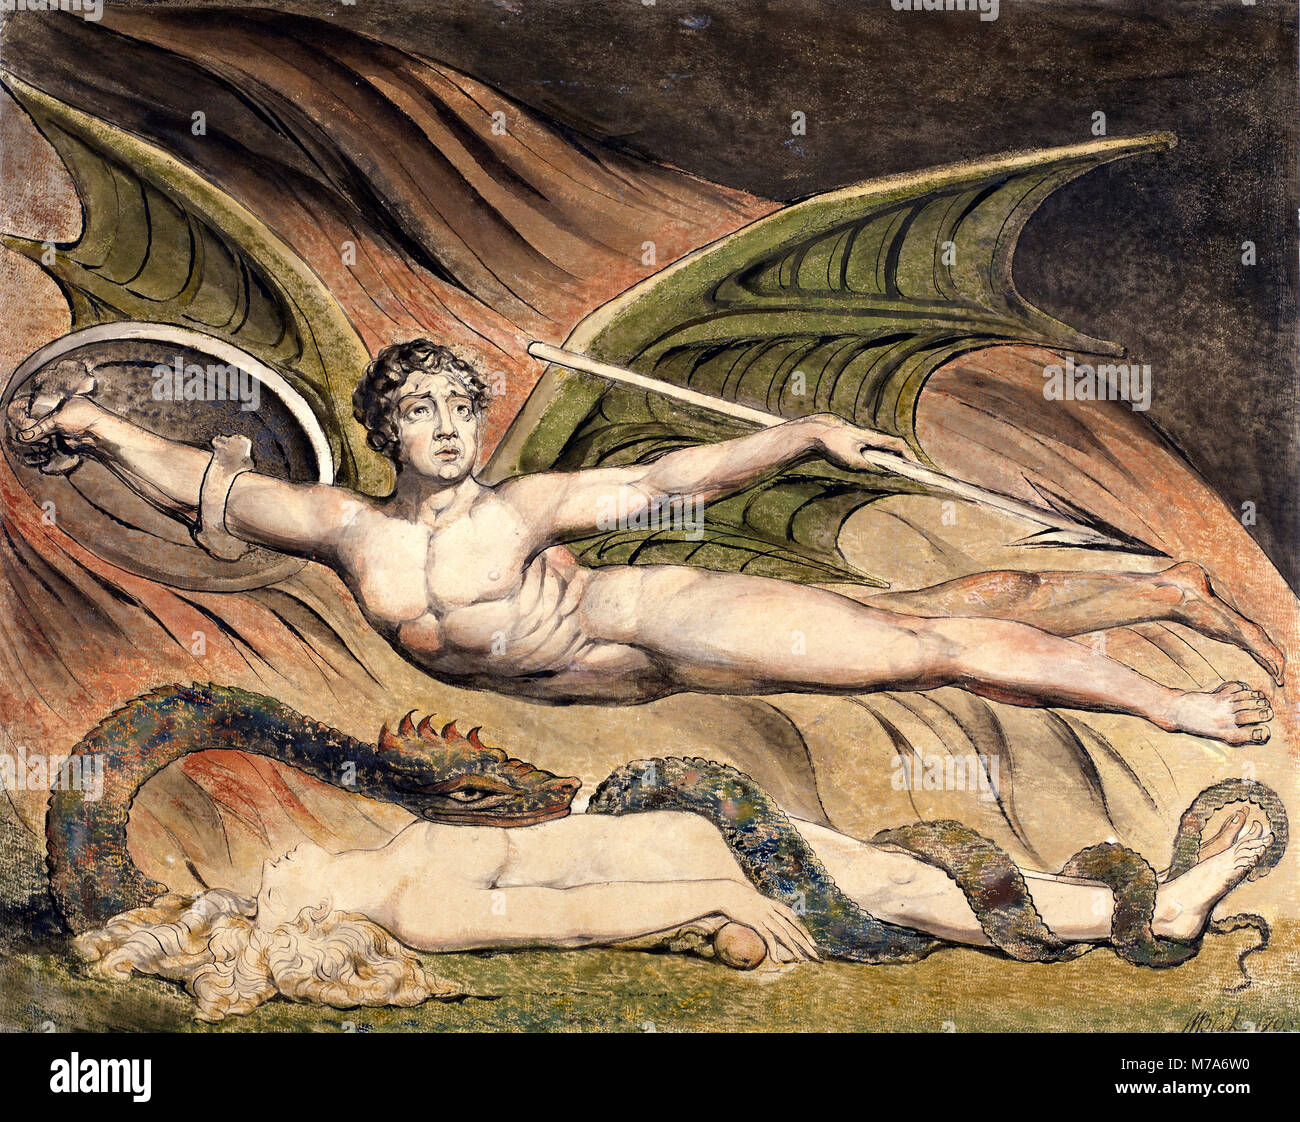 Satan Exulting over Eve by William Blake (1757-1827), 1795 - Stock Image